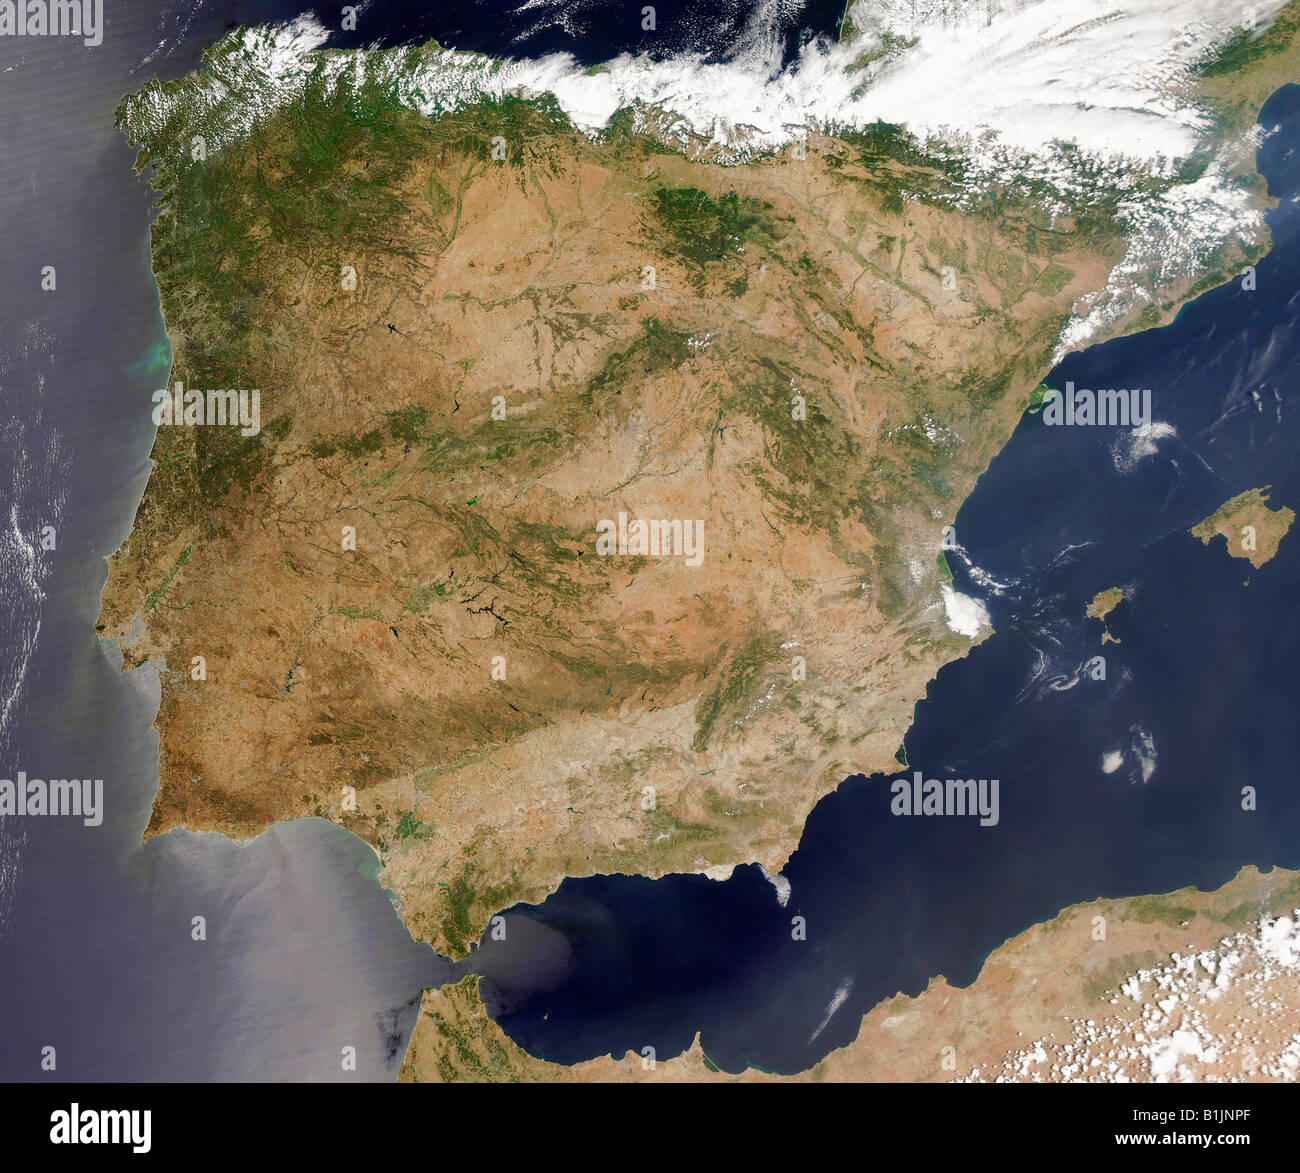 Satellite Image Of The Iberian Peninsula Spain And